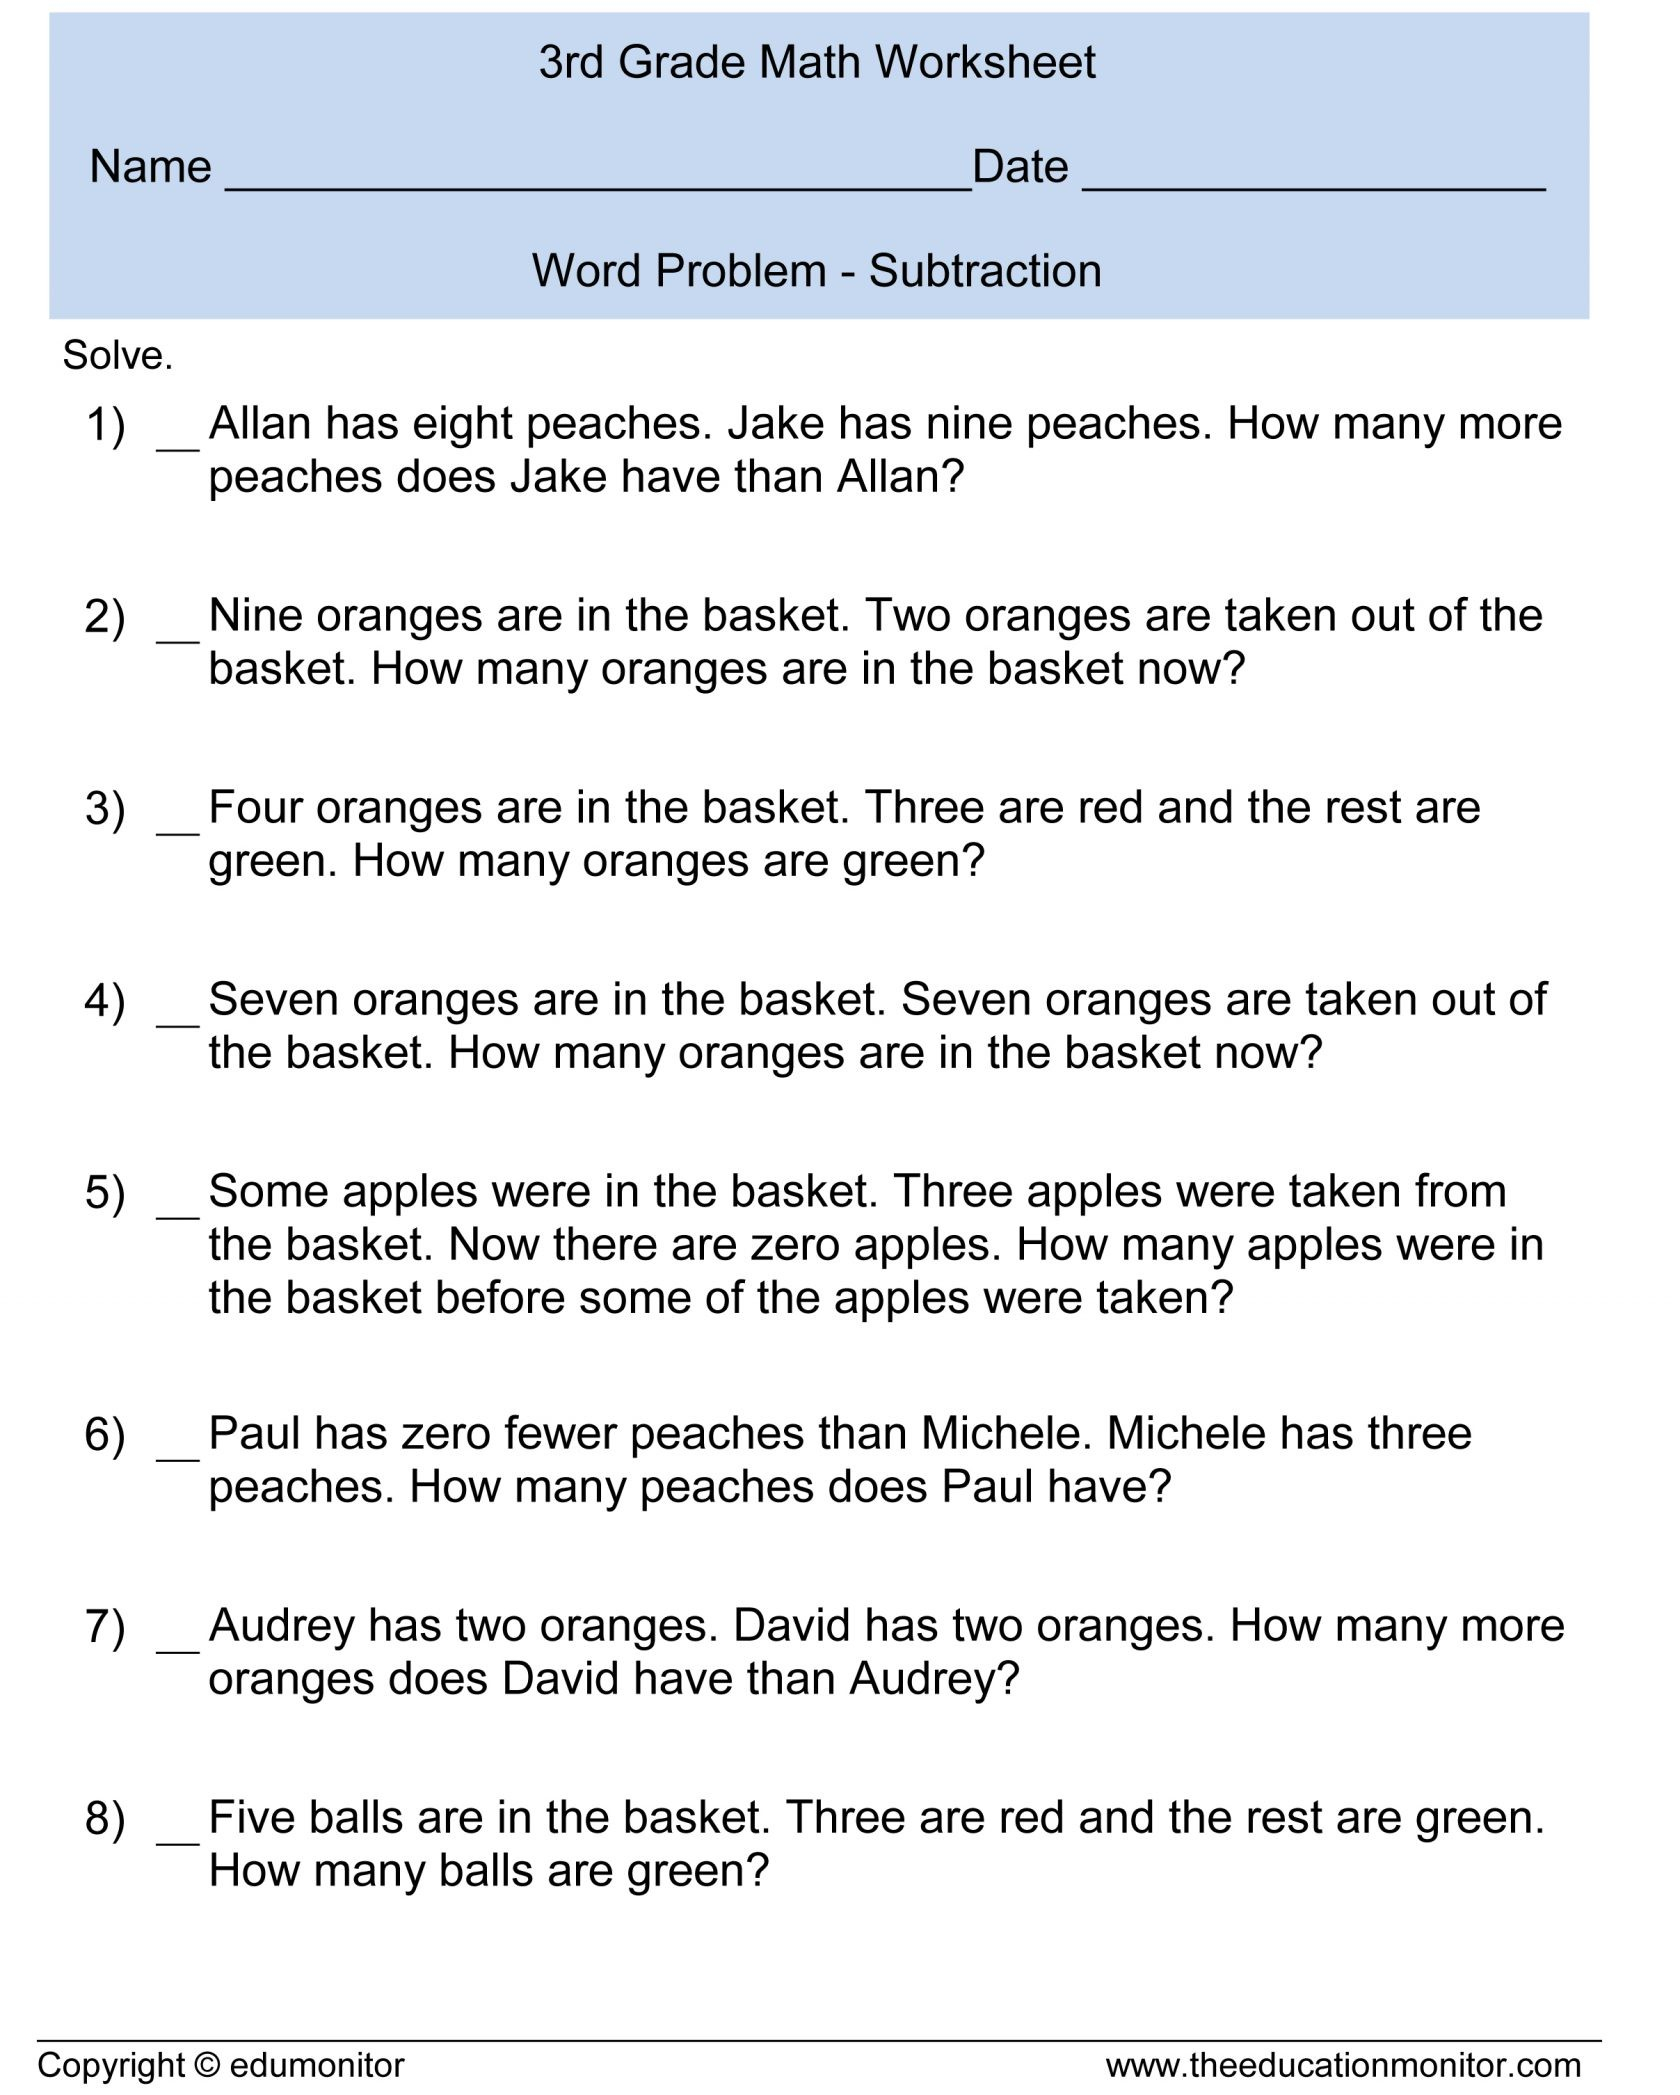 4th Grade Math Money Word Problems Worksheets With 2nd